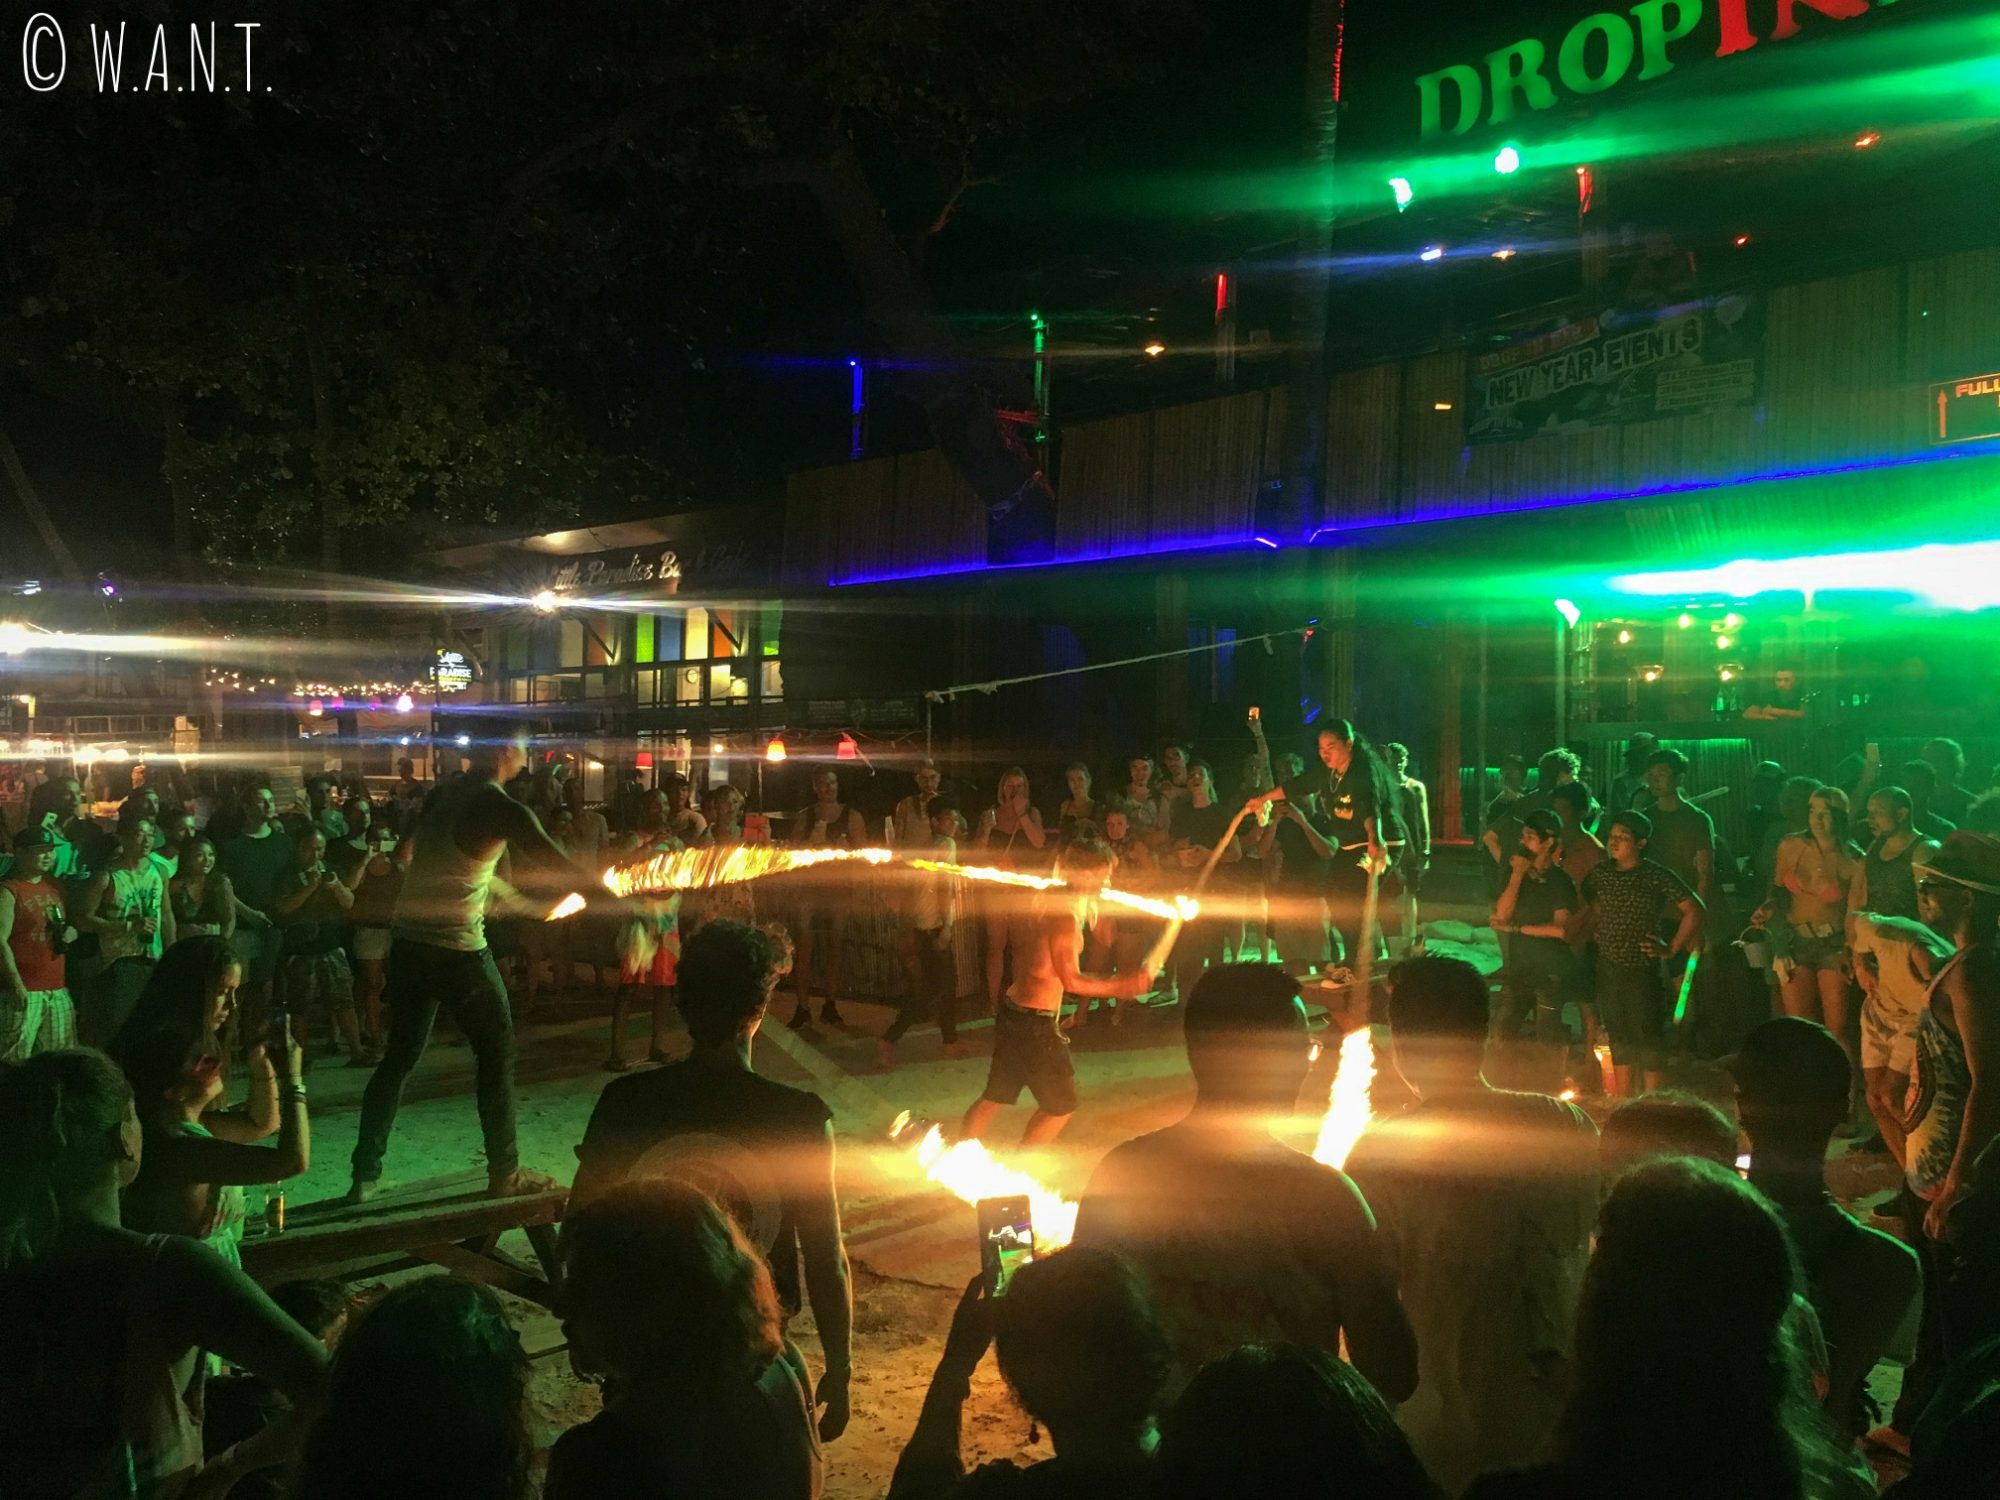 Jeu avec le feu à la Full Moon Party de Koh Phangan